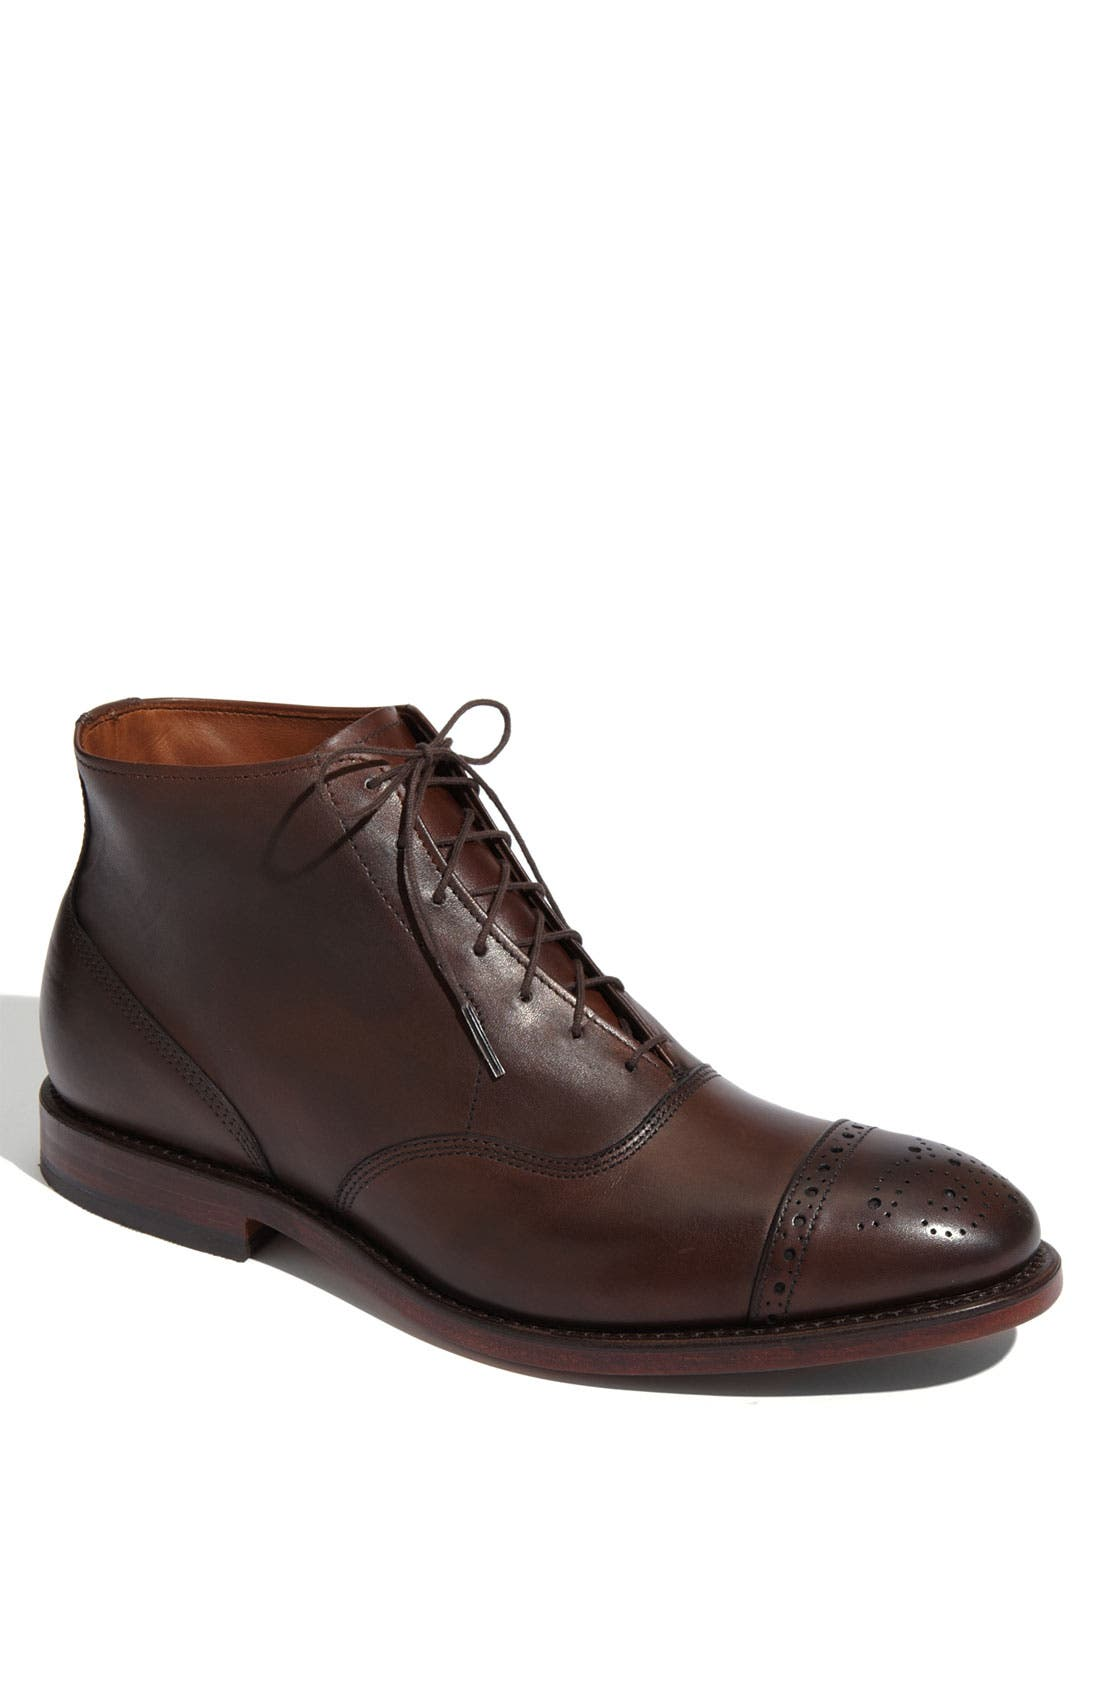 Main Image - Allen Edmonds 'Fifth Street' Boot (Men)